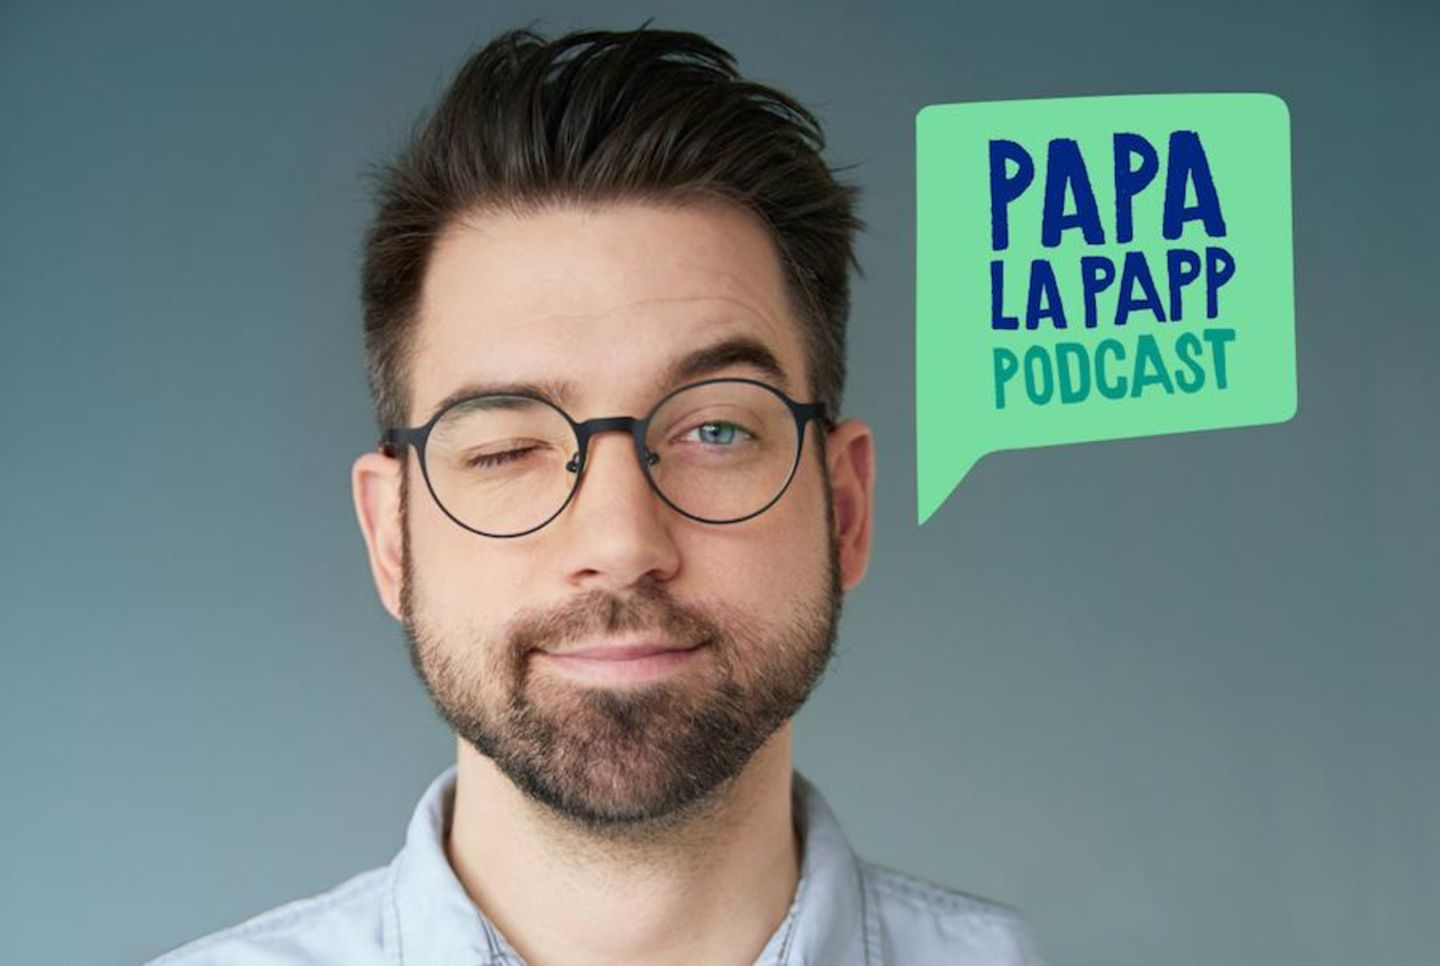 Podcast Papalapapp: Papalapapp – alle Folgen